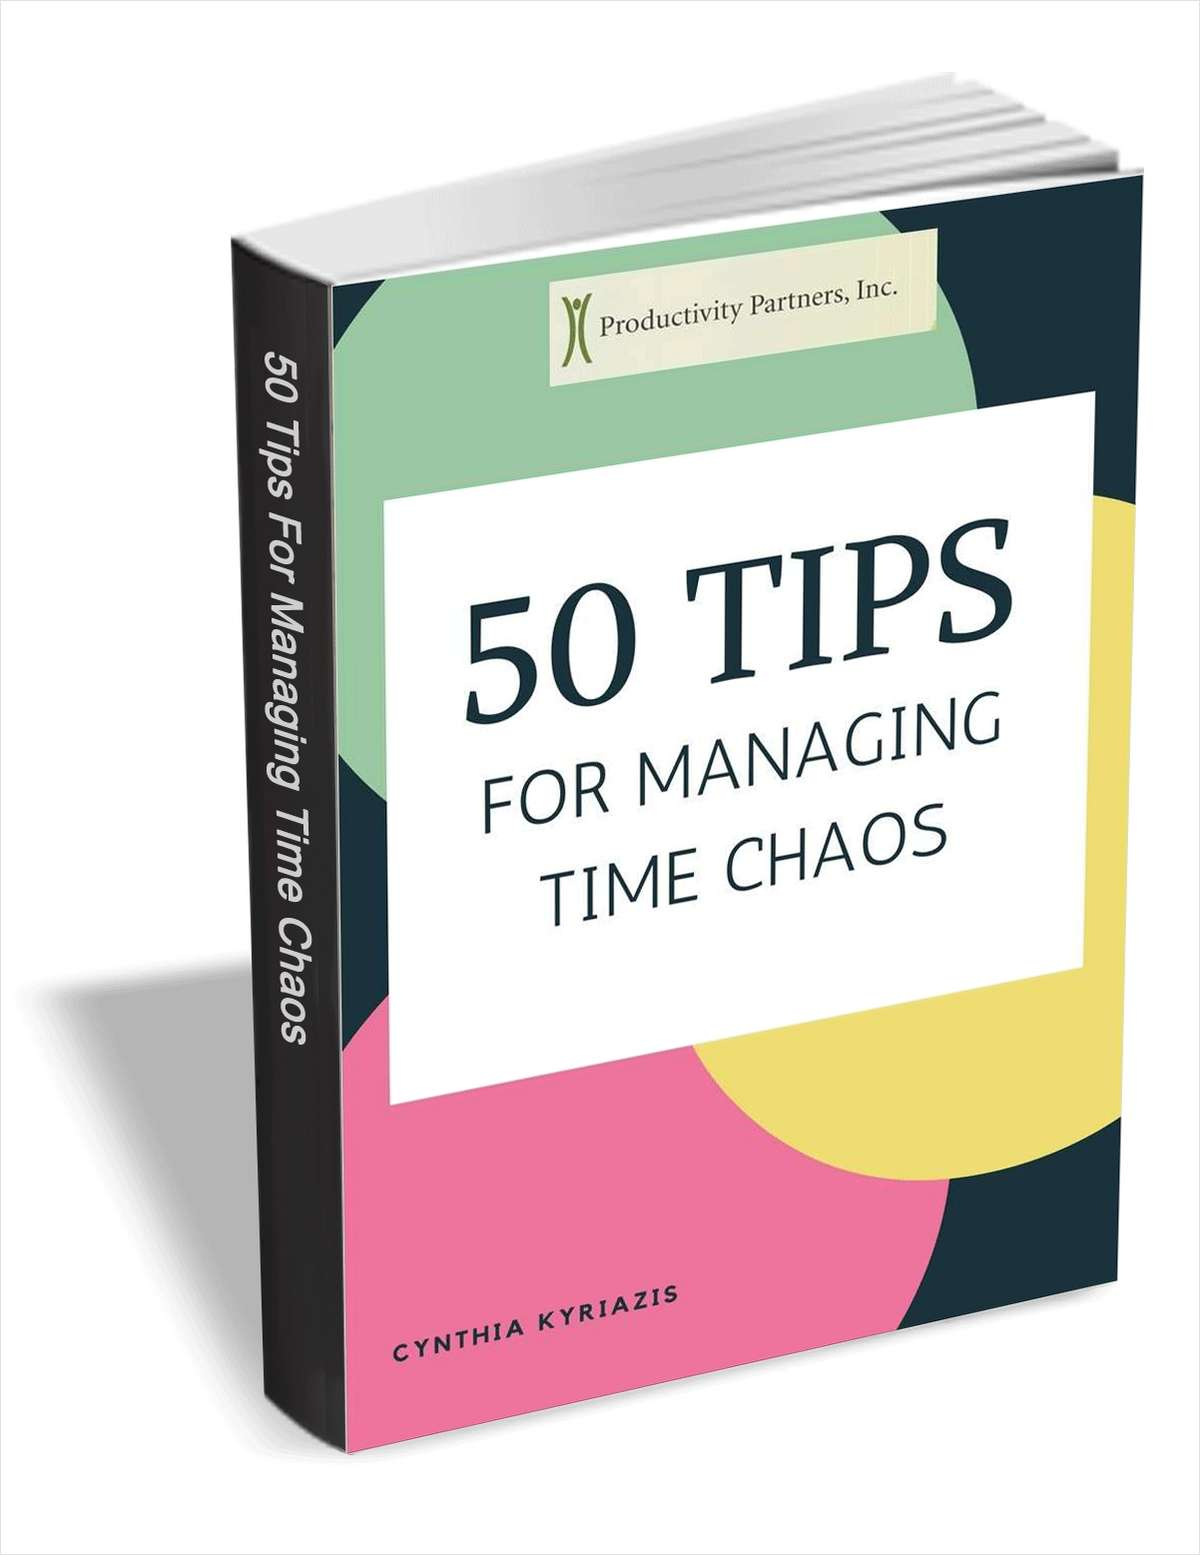 50 Tips for Managing Time Chaos